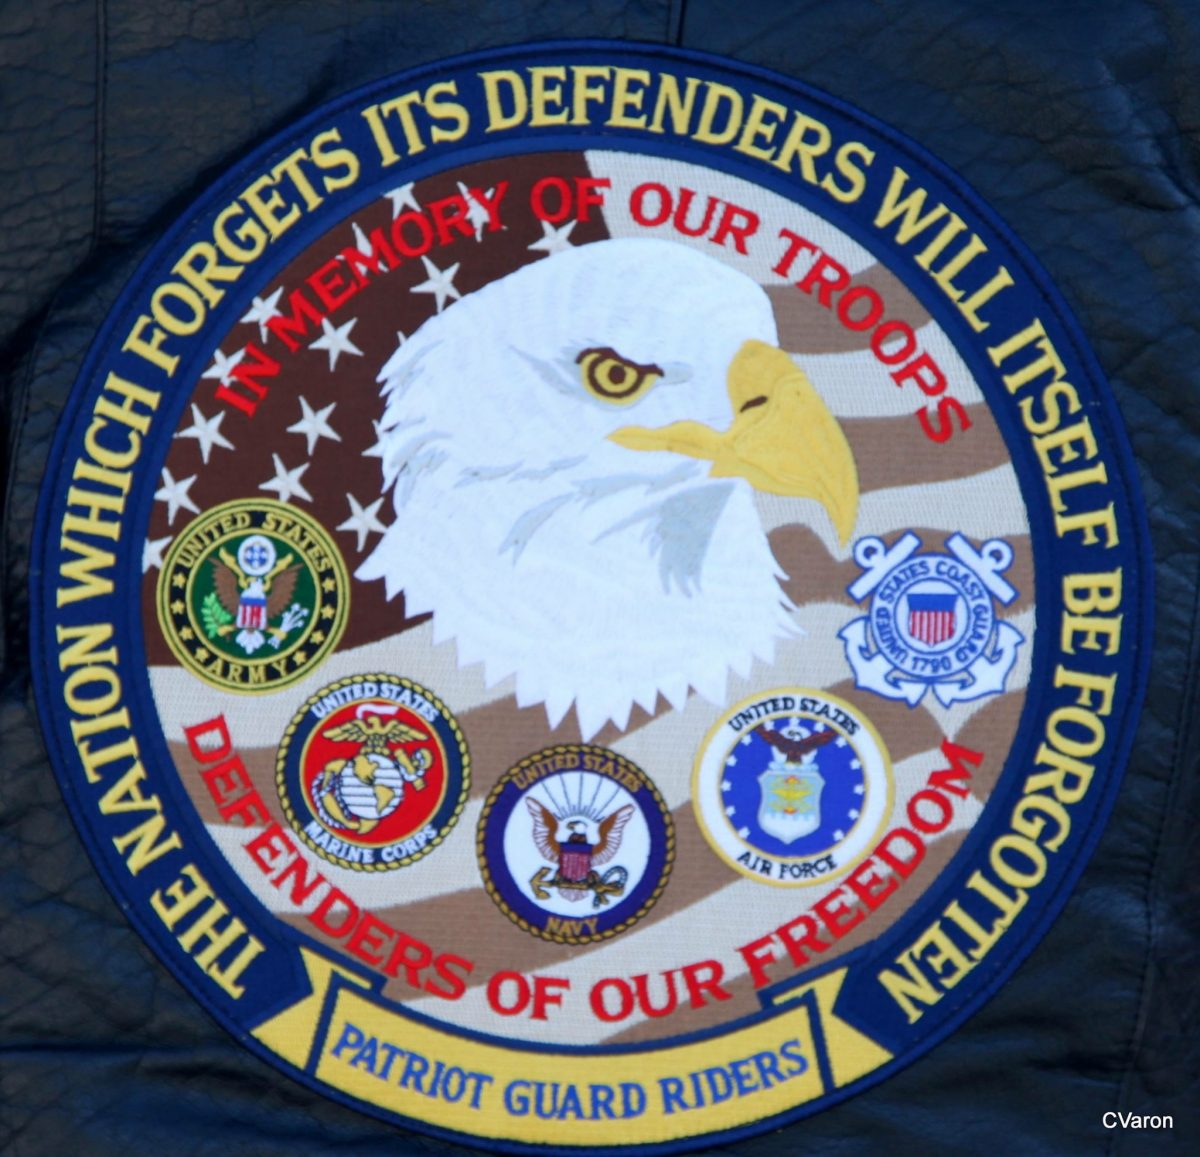 My Salute to the Members of the Patriot Guard Riders of New York